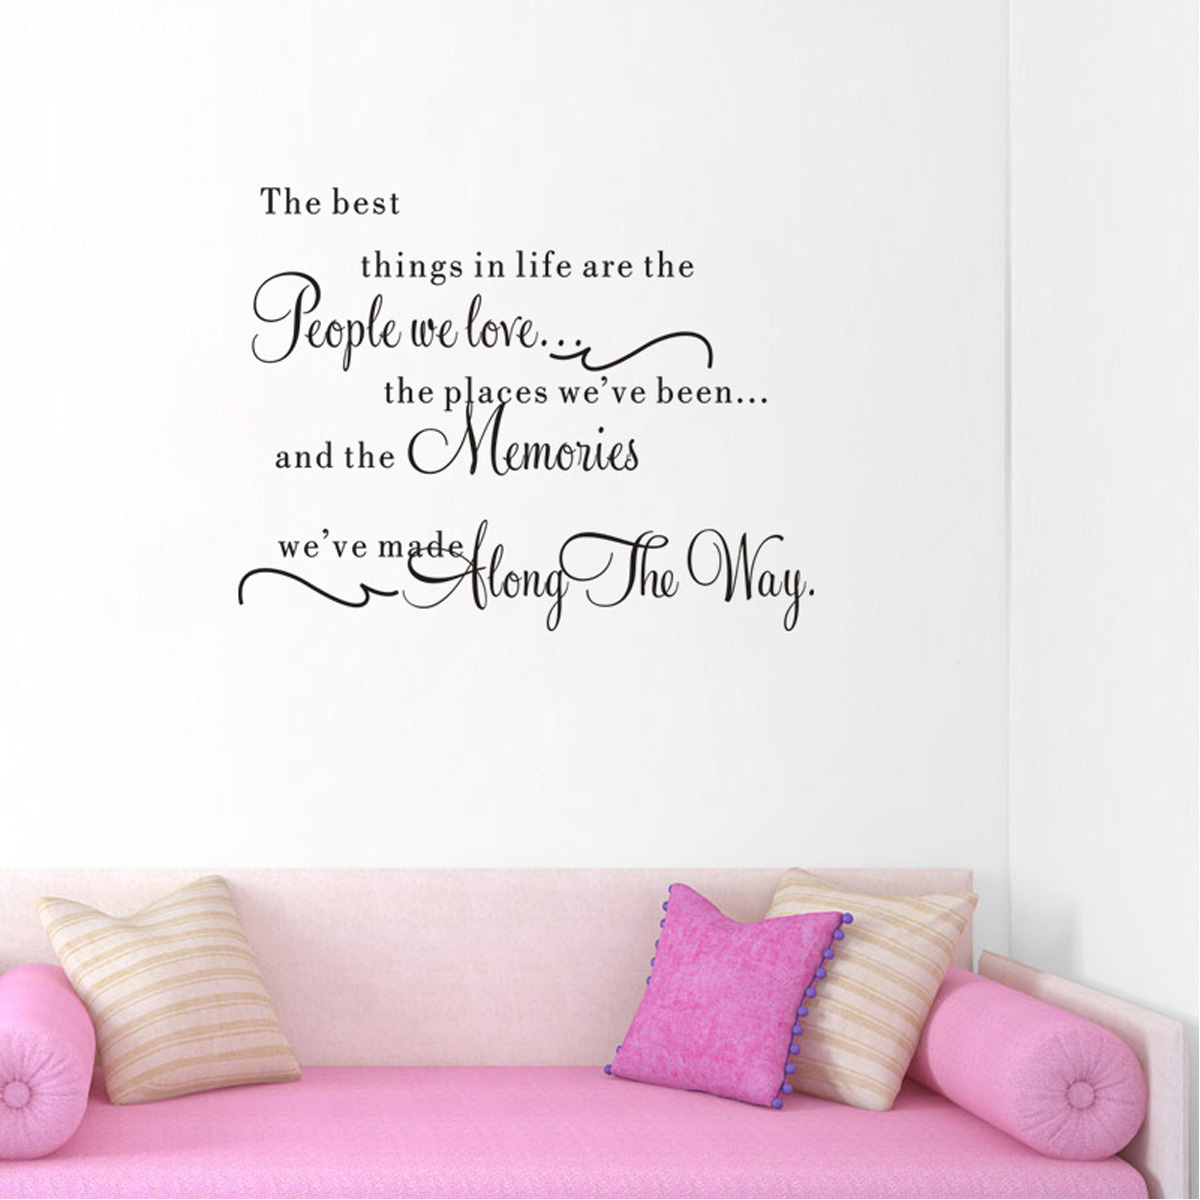 Love Wall Quotes Family Diy Quote Removable Art Wall Sticker Mirror Decal Mural